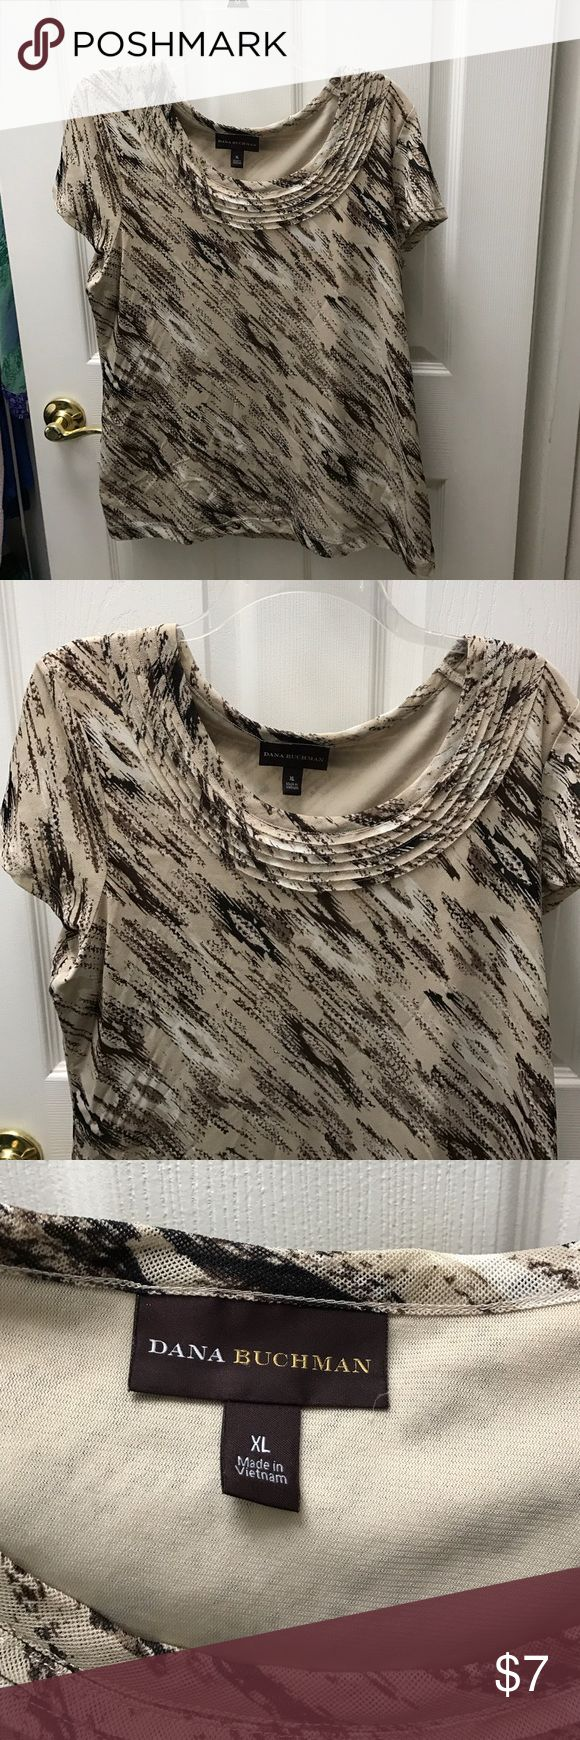 Woman's blouse Dana Buchanan Very Nice Blouse in tan and brown Woman's size XL Excellent Condition Very nice easy care fabric Dana Buchman Tops Blouses